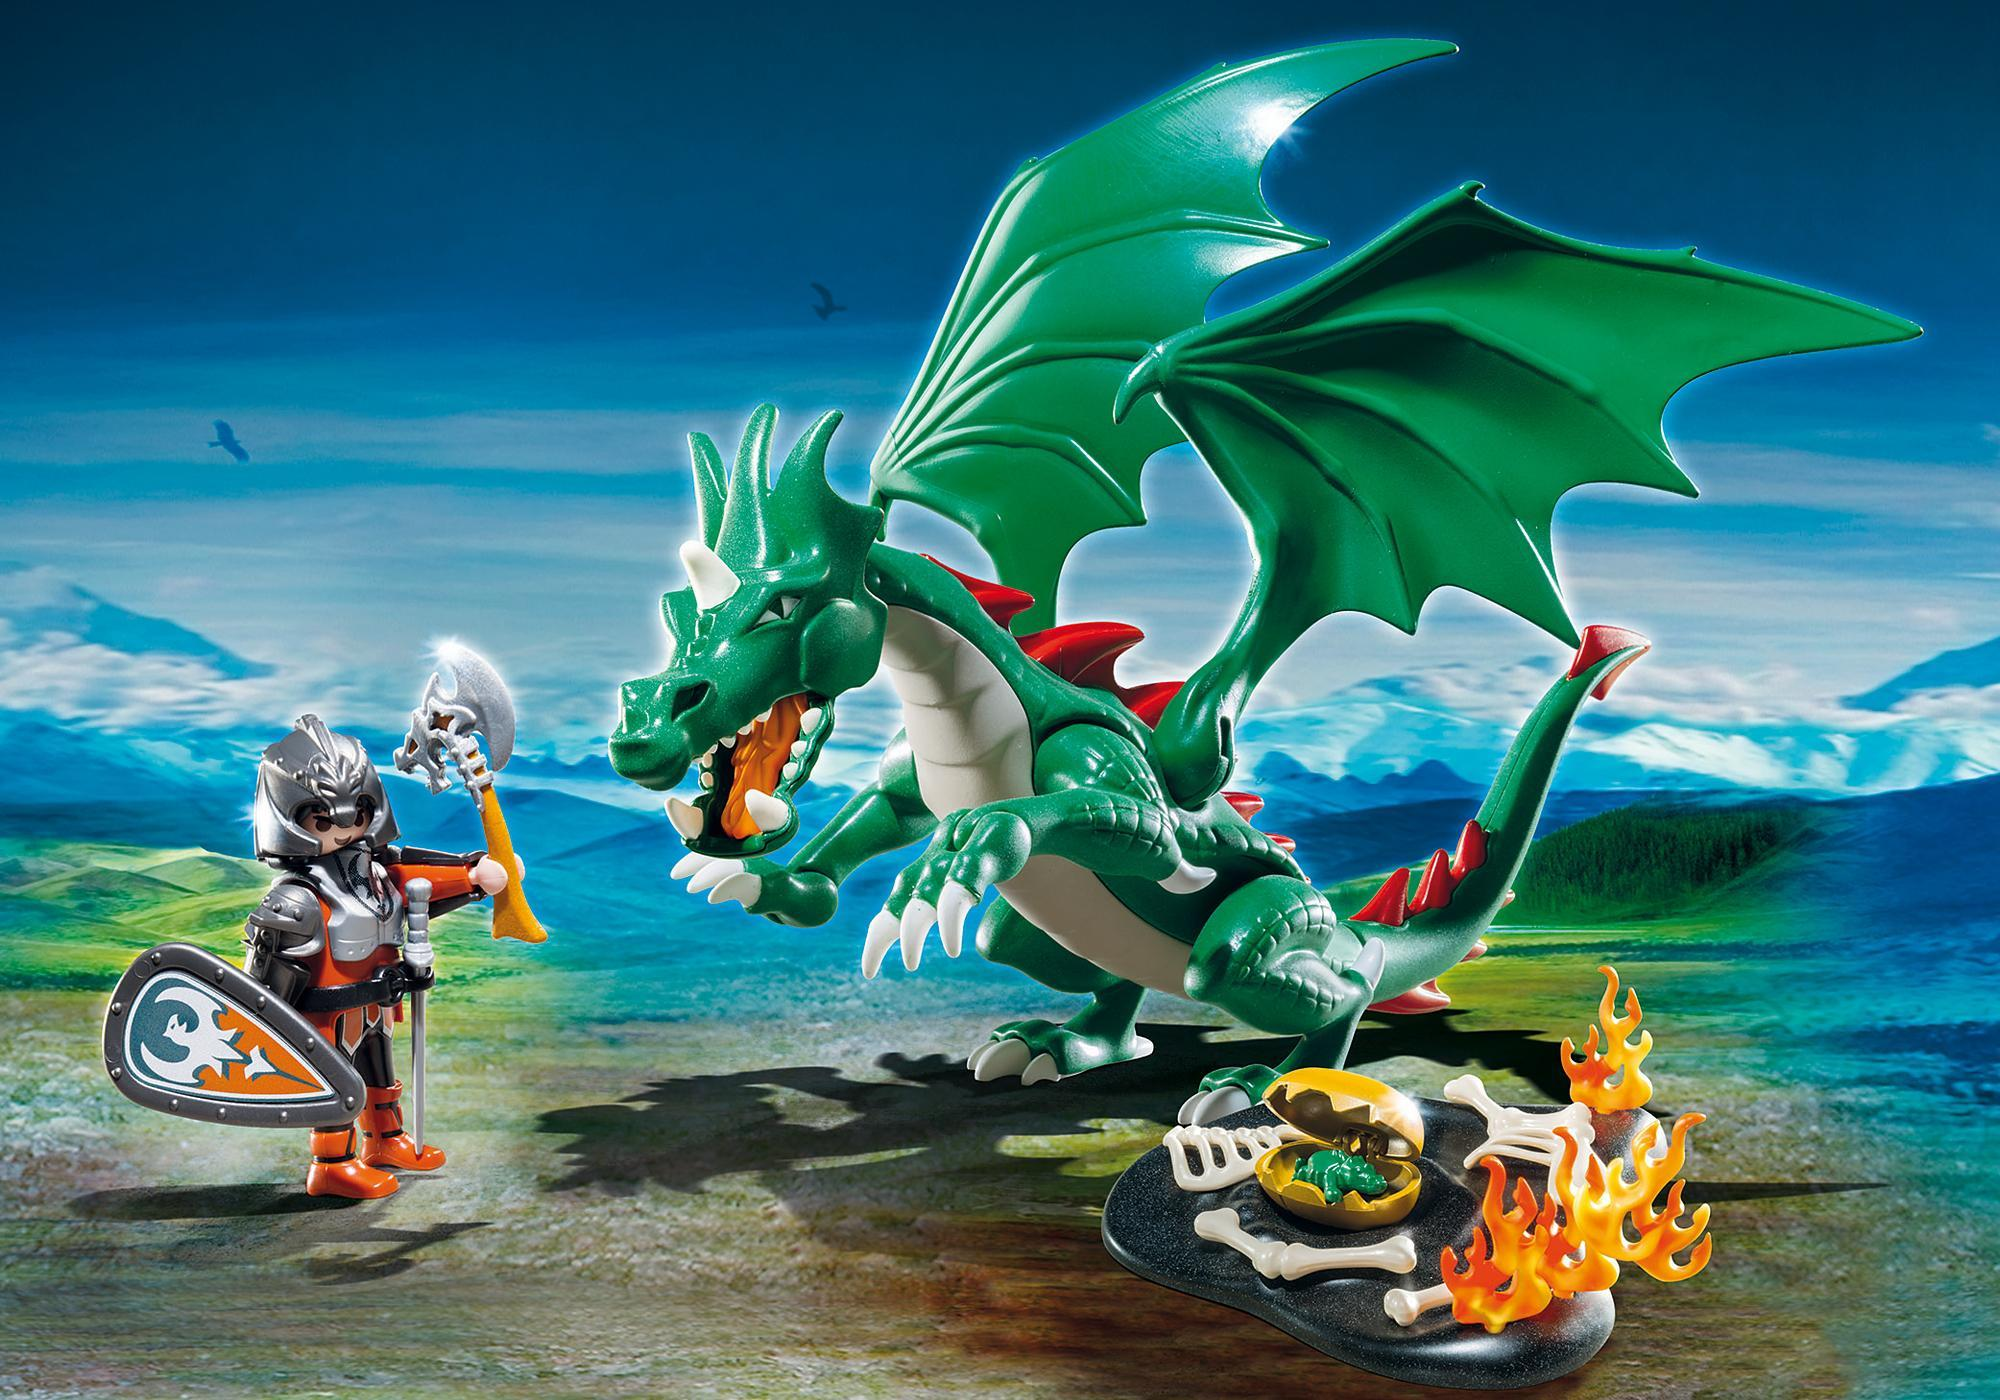 http://media.playmobil.com/i/playmobil/6003_product_detail/Gran Dragón